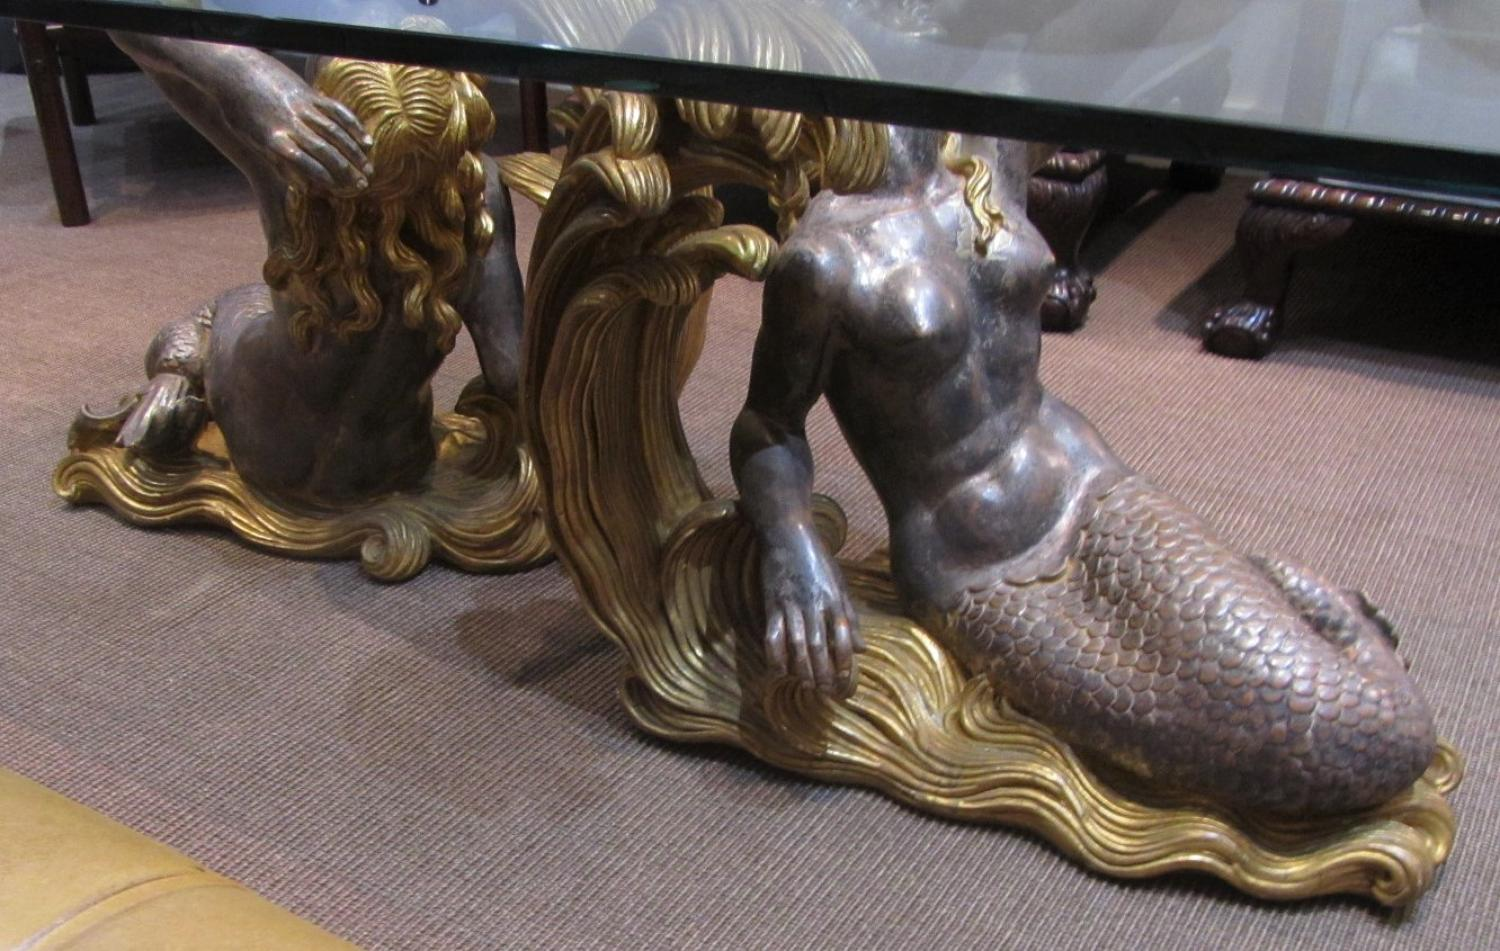 A Mid Century Mermaid Coffee Table 10462 Pic9 Size3 Interior Boutiques Antiques For Sale And